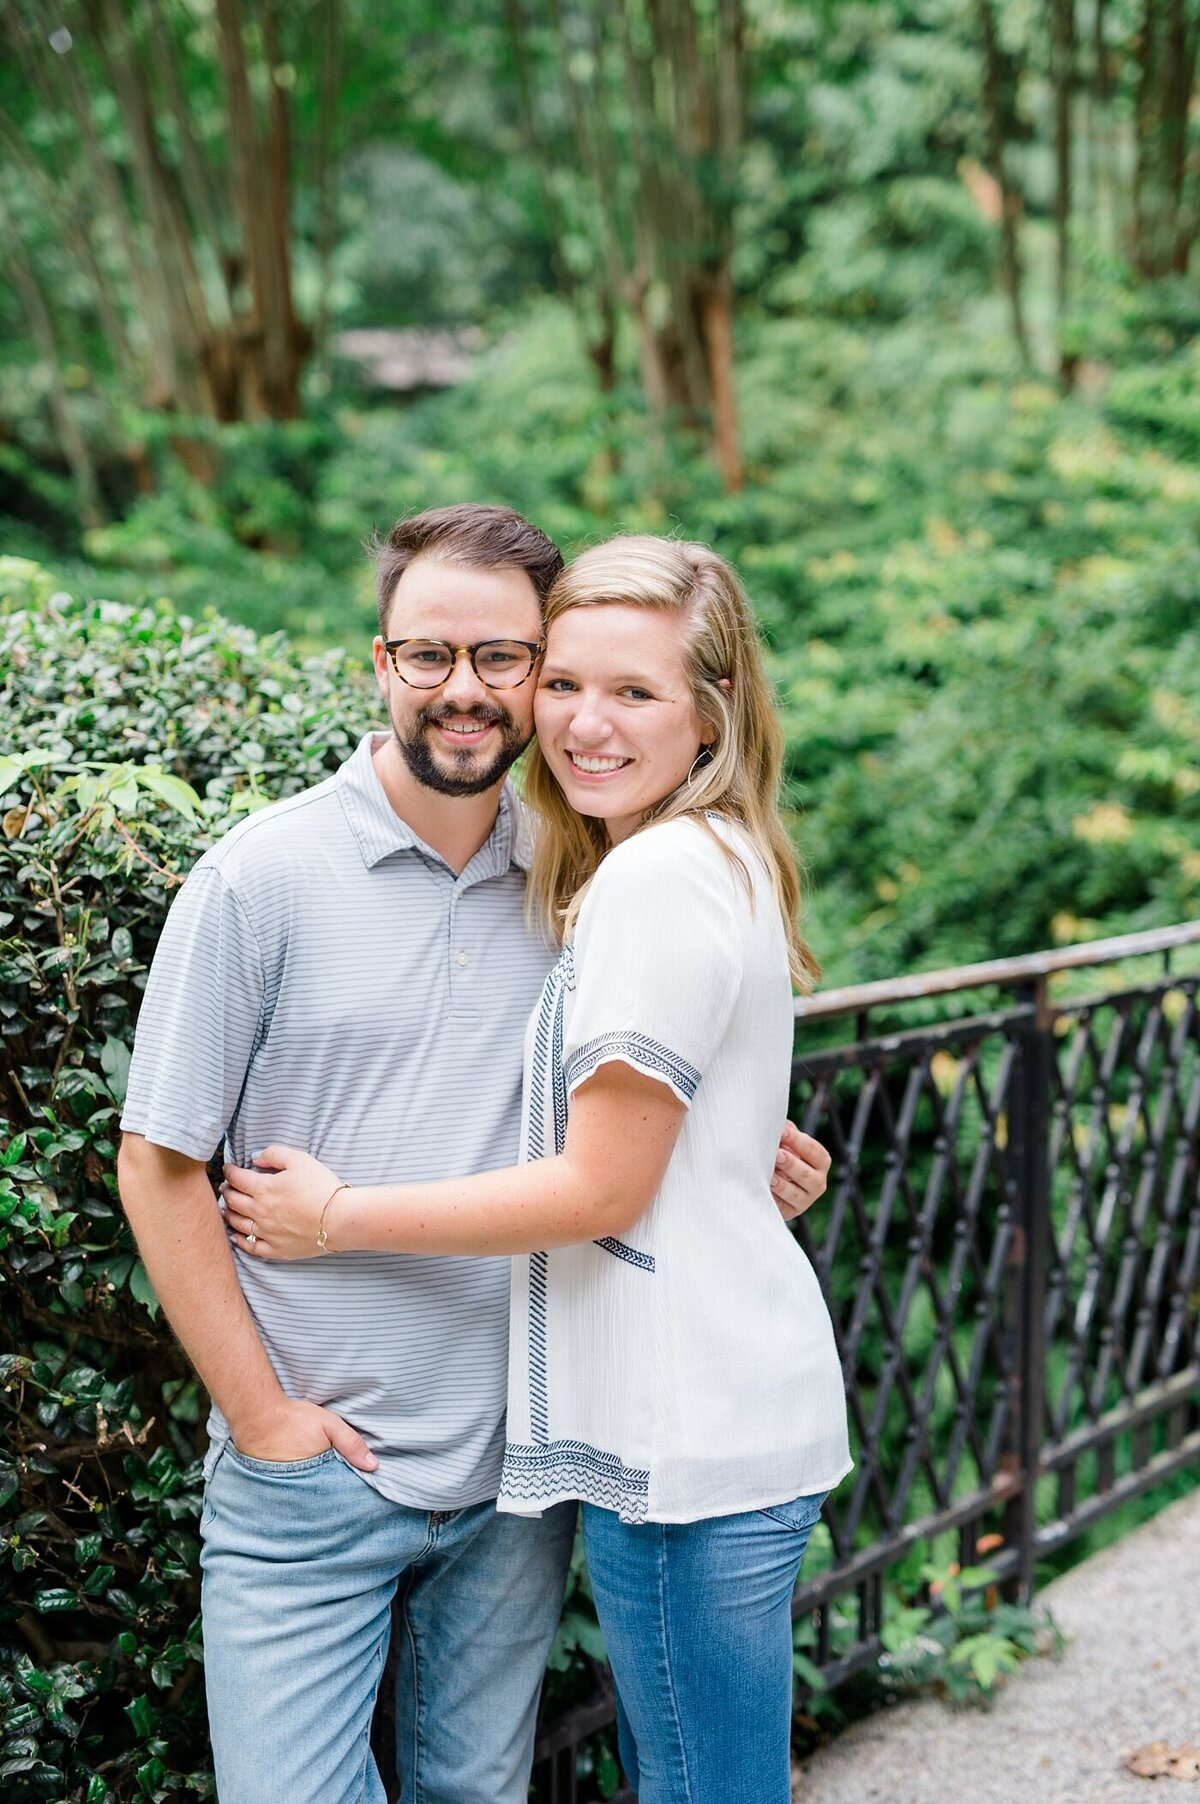 cator-woolford-gardens-engagement-wedding-photographer-laura-barnes-photo-shackelford-44